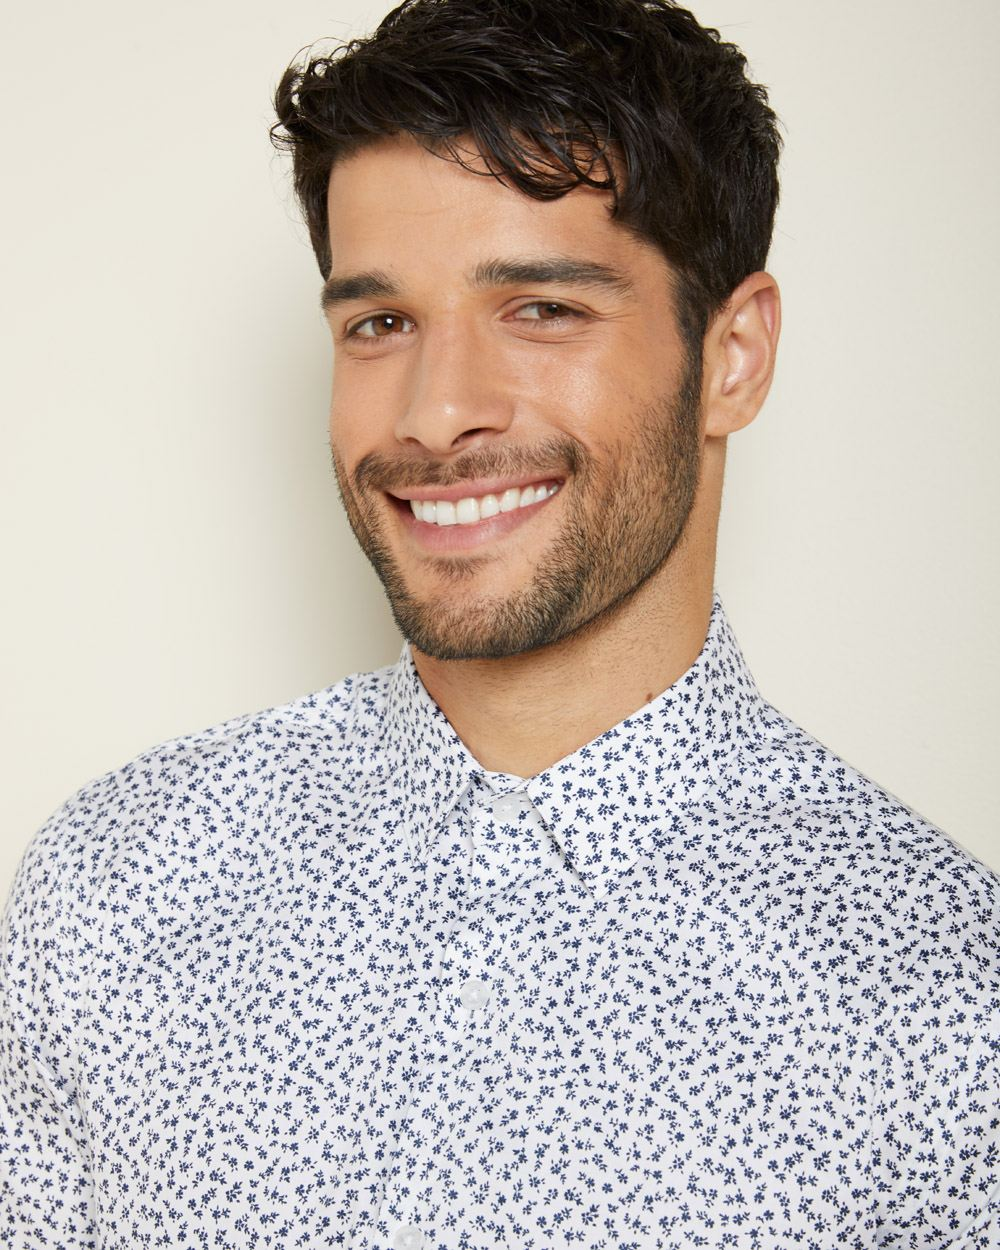 Athletic Fit micro floral dress shirt